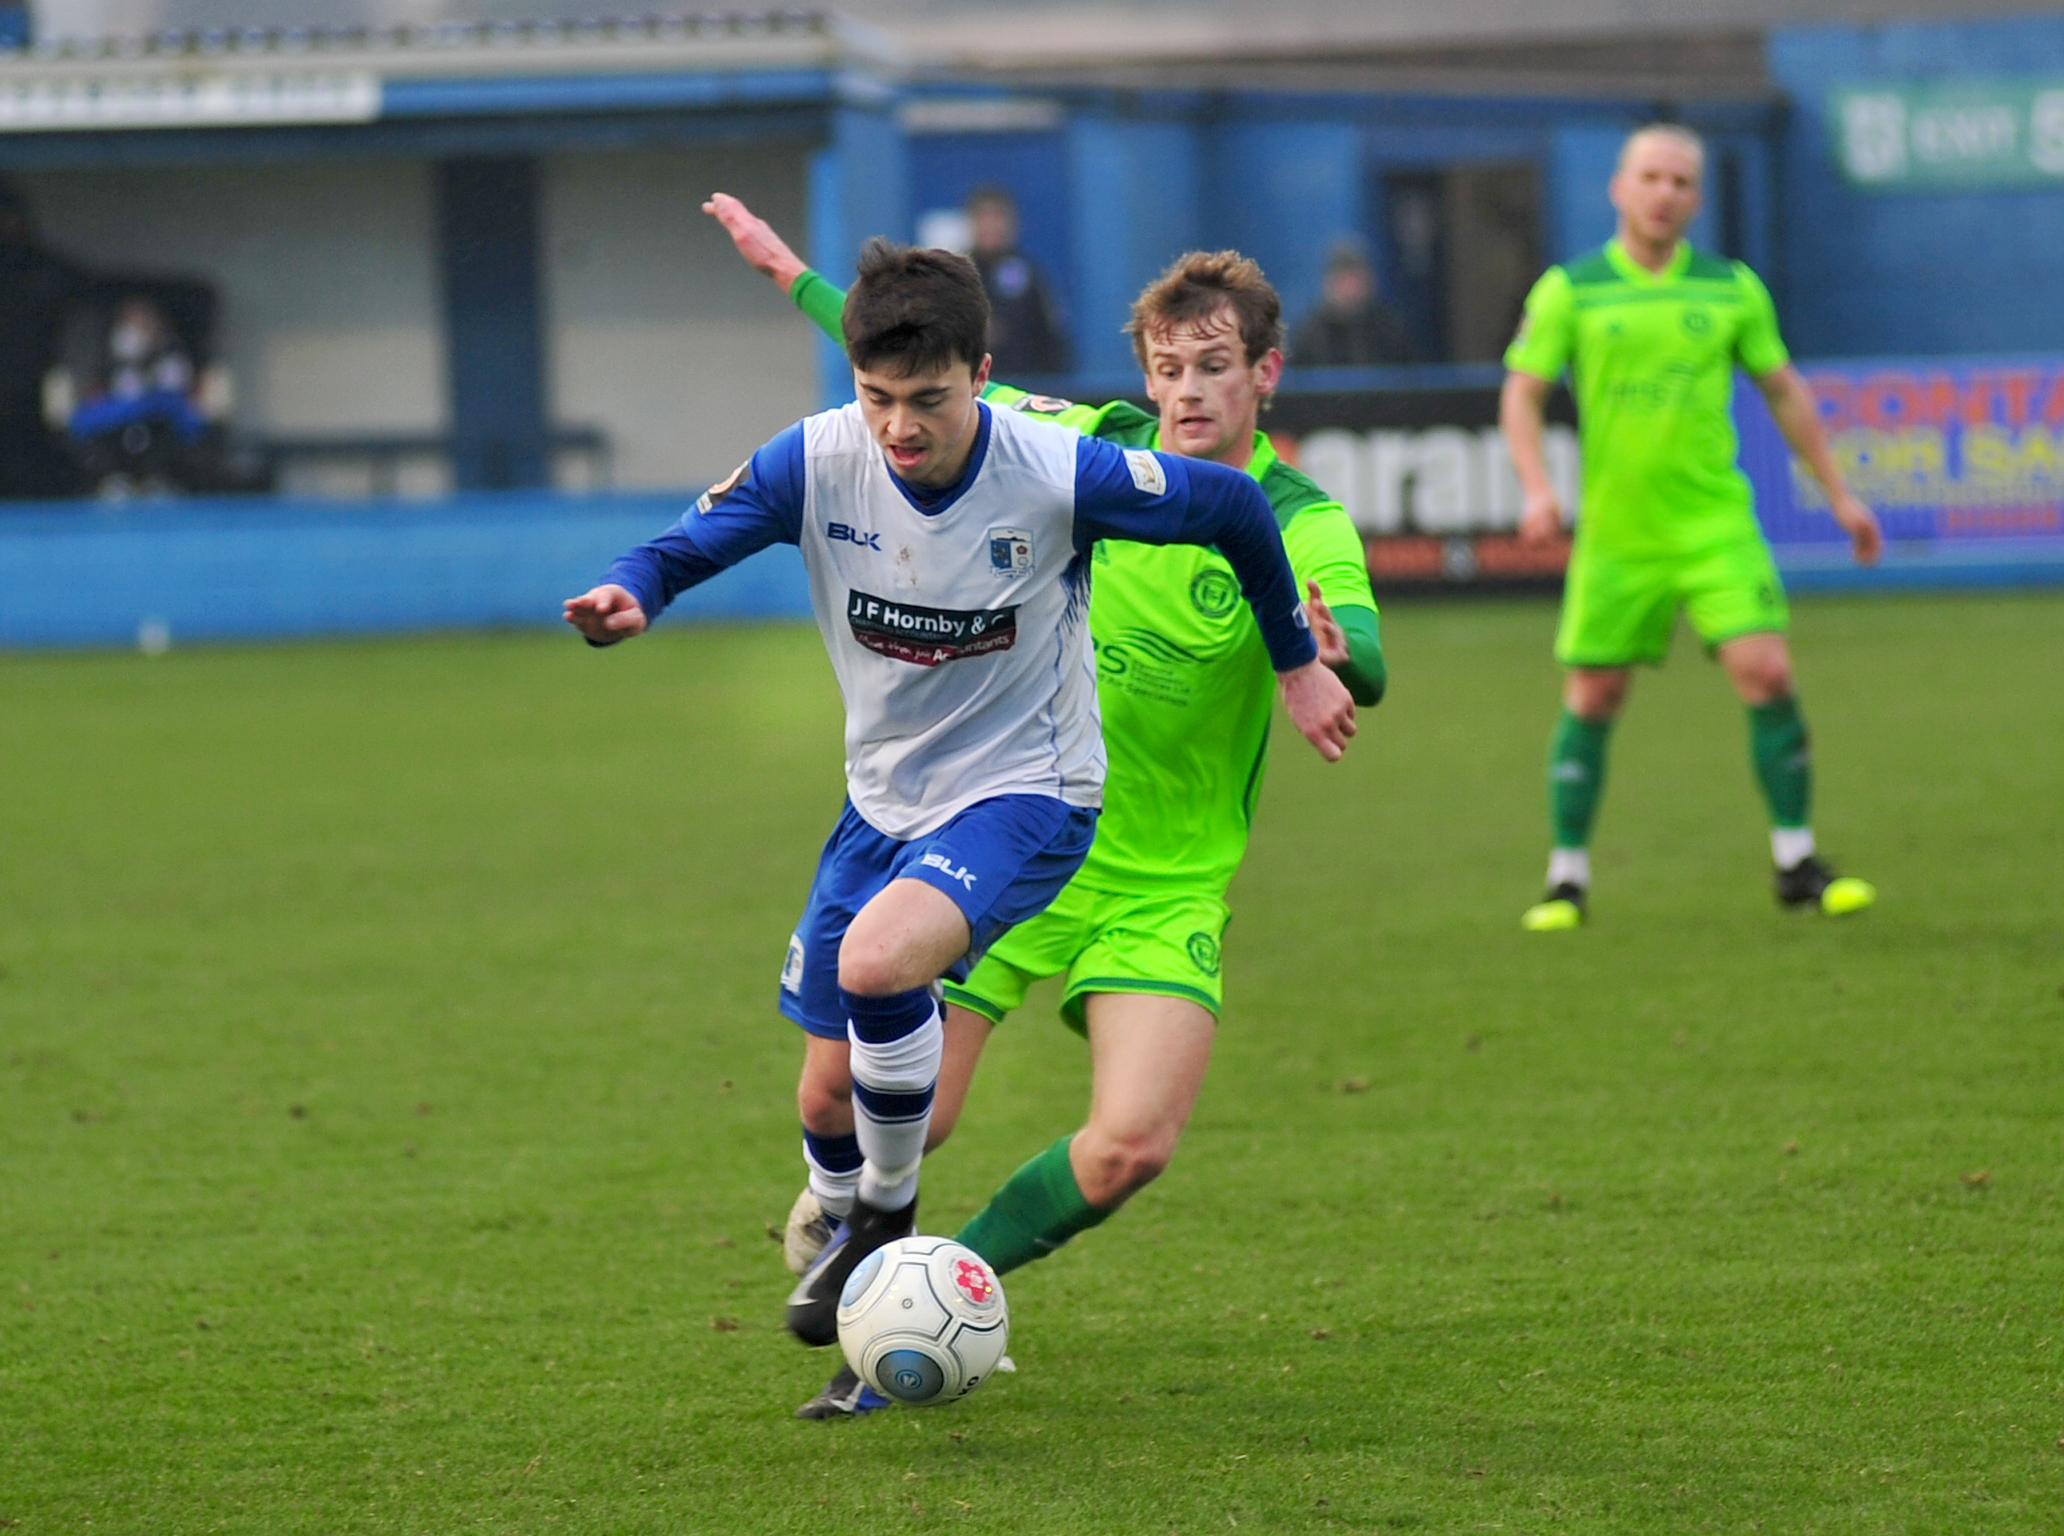 Luke Burgess for Barrow A.F.C in their game against FC Halifax Town